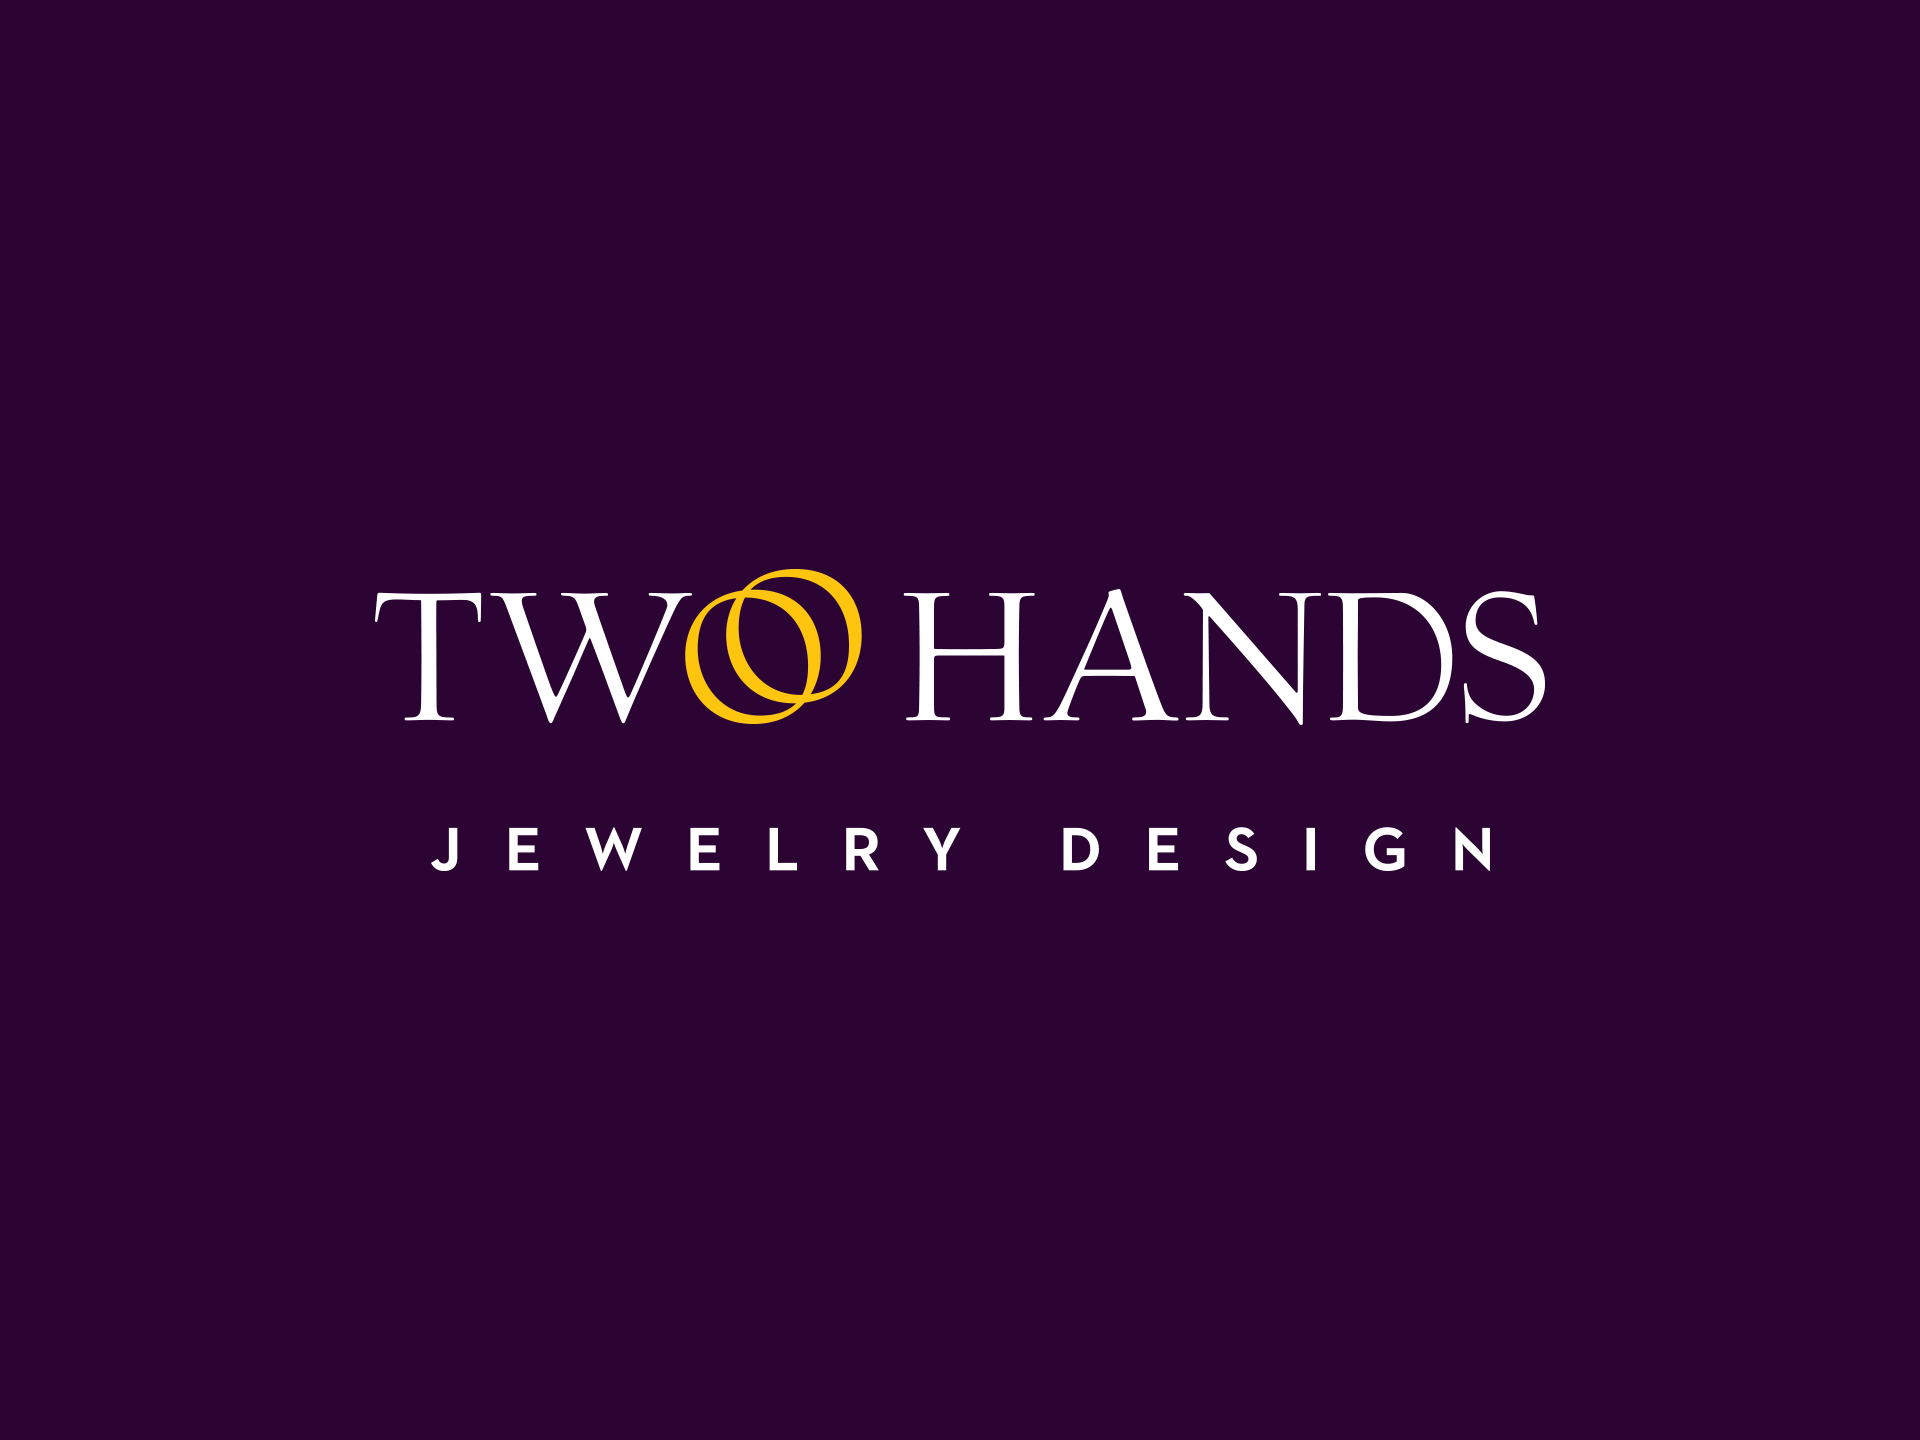 Two Hands Jewelry Design | Two Hands Jewelry Design | Logo | Jake Cooper Design